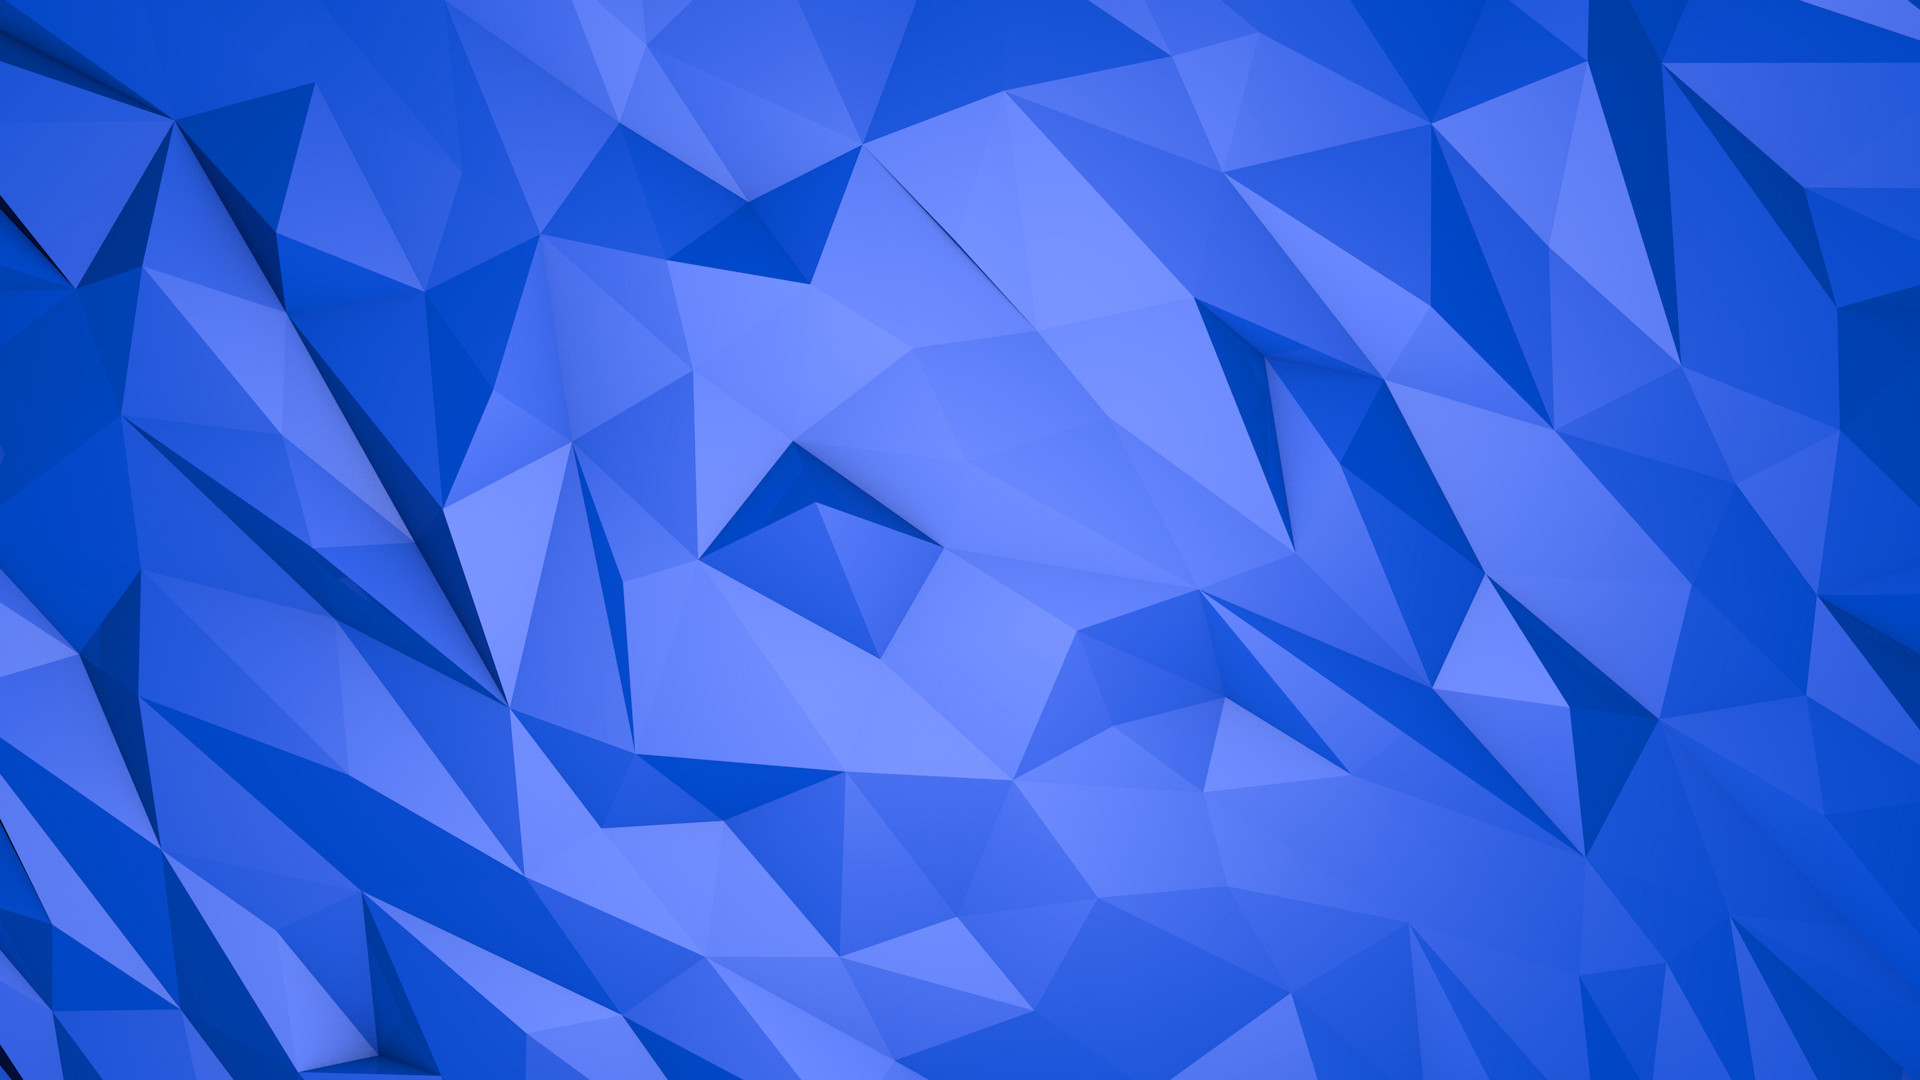 1920x1080 Abstract blue triangles - 3D wallpaper. Awesome 3D and HD rendered  Wallpapers. download beautiful